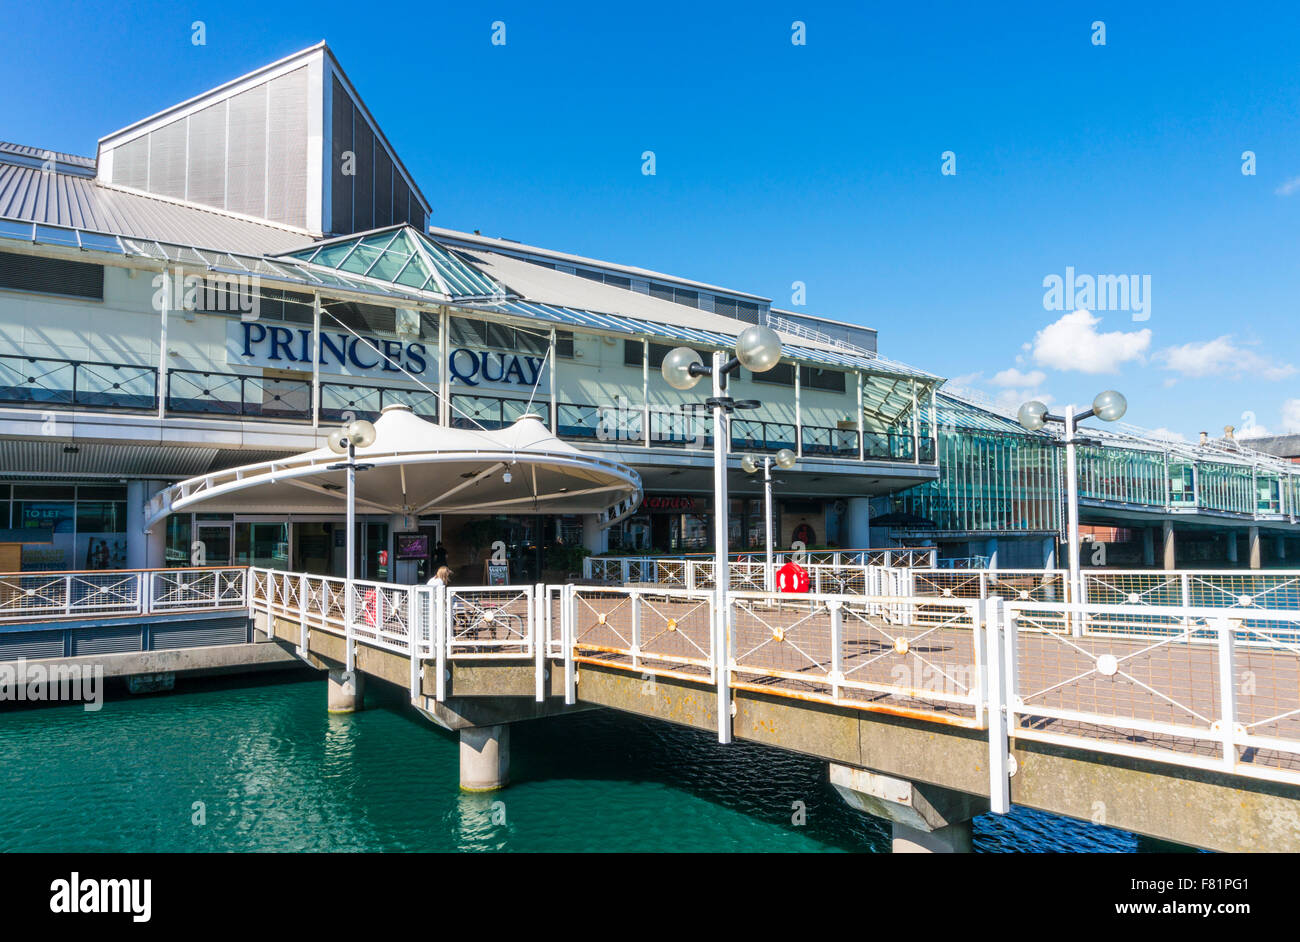 Exterior entrance to Prince's Quay shopping centre built over Prince's dock Kingston upon Hull Yorkshire - Stock Image